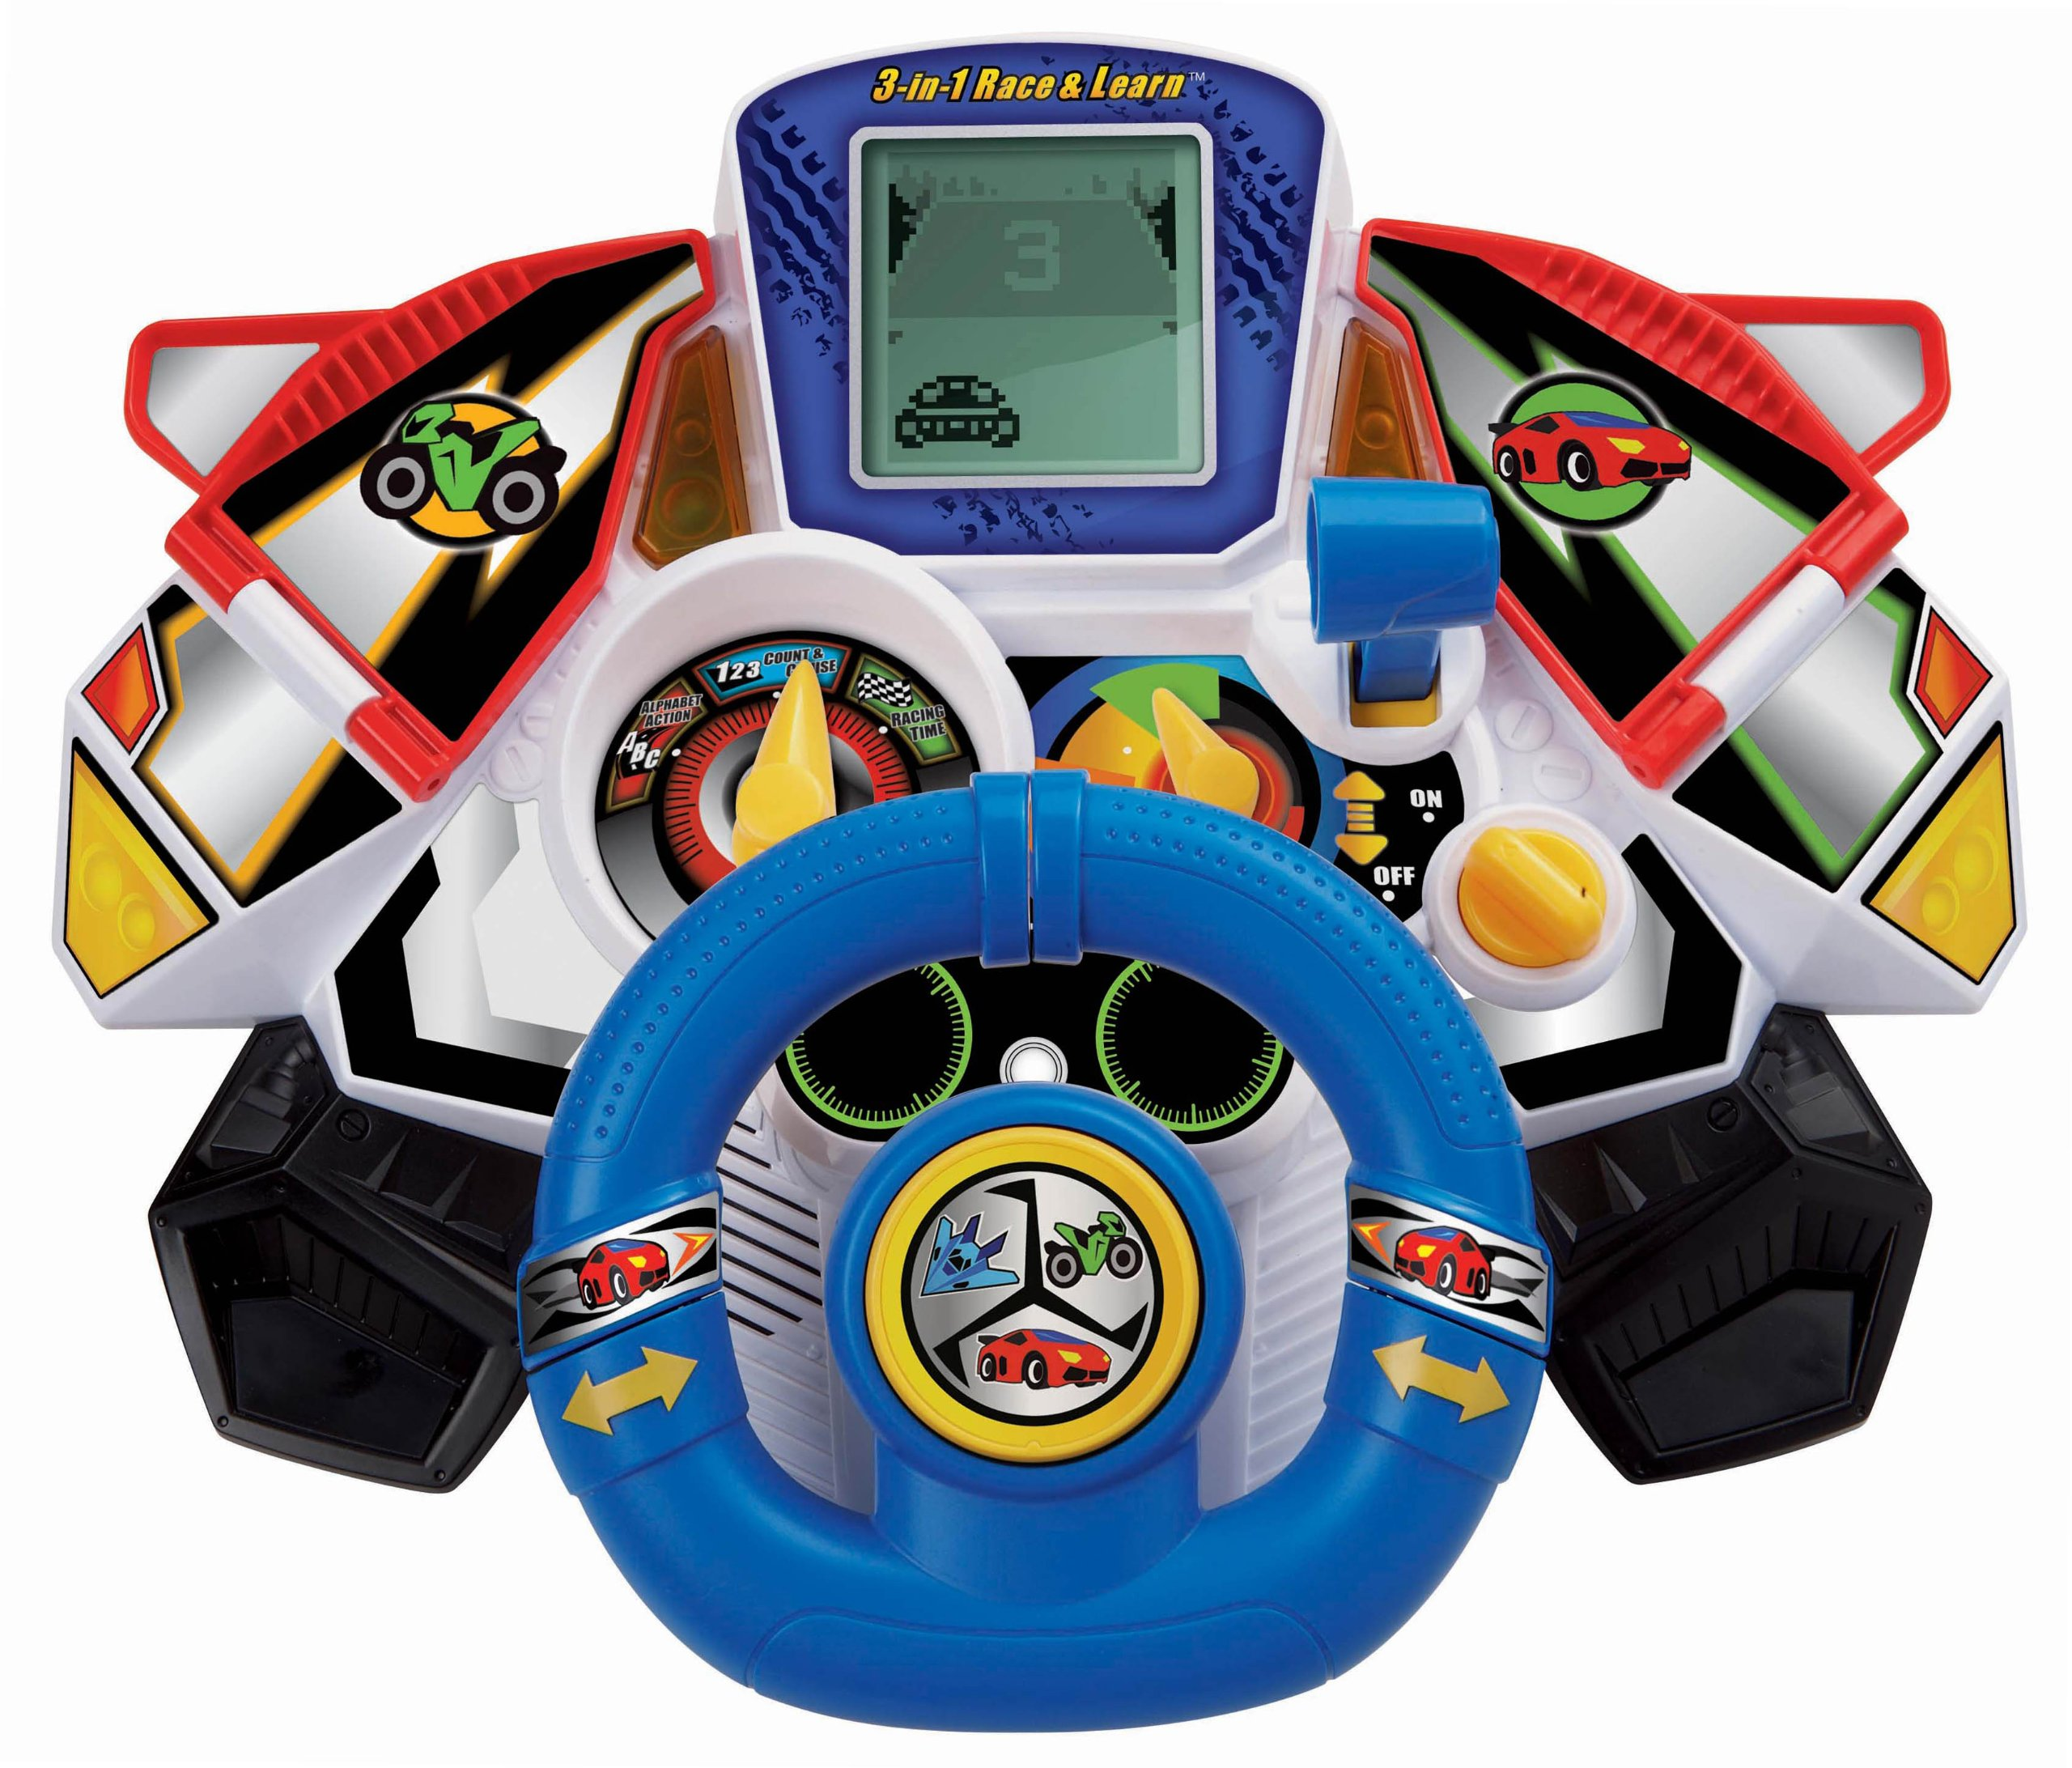 VTech 3-in-1 Race and Learn  sc 1 st  Amazon.com & 4 Year Old Boy Toys: Amazon.com